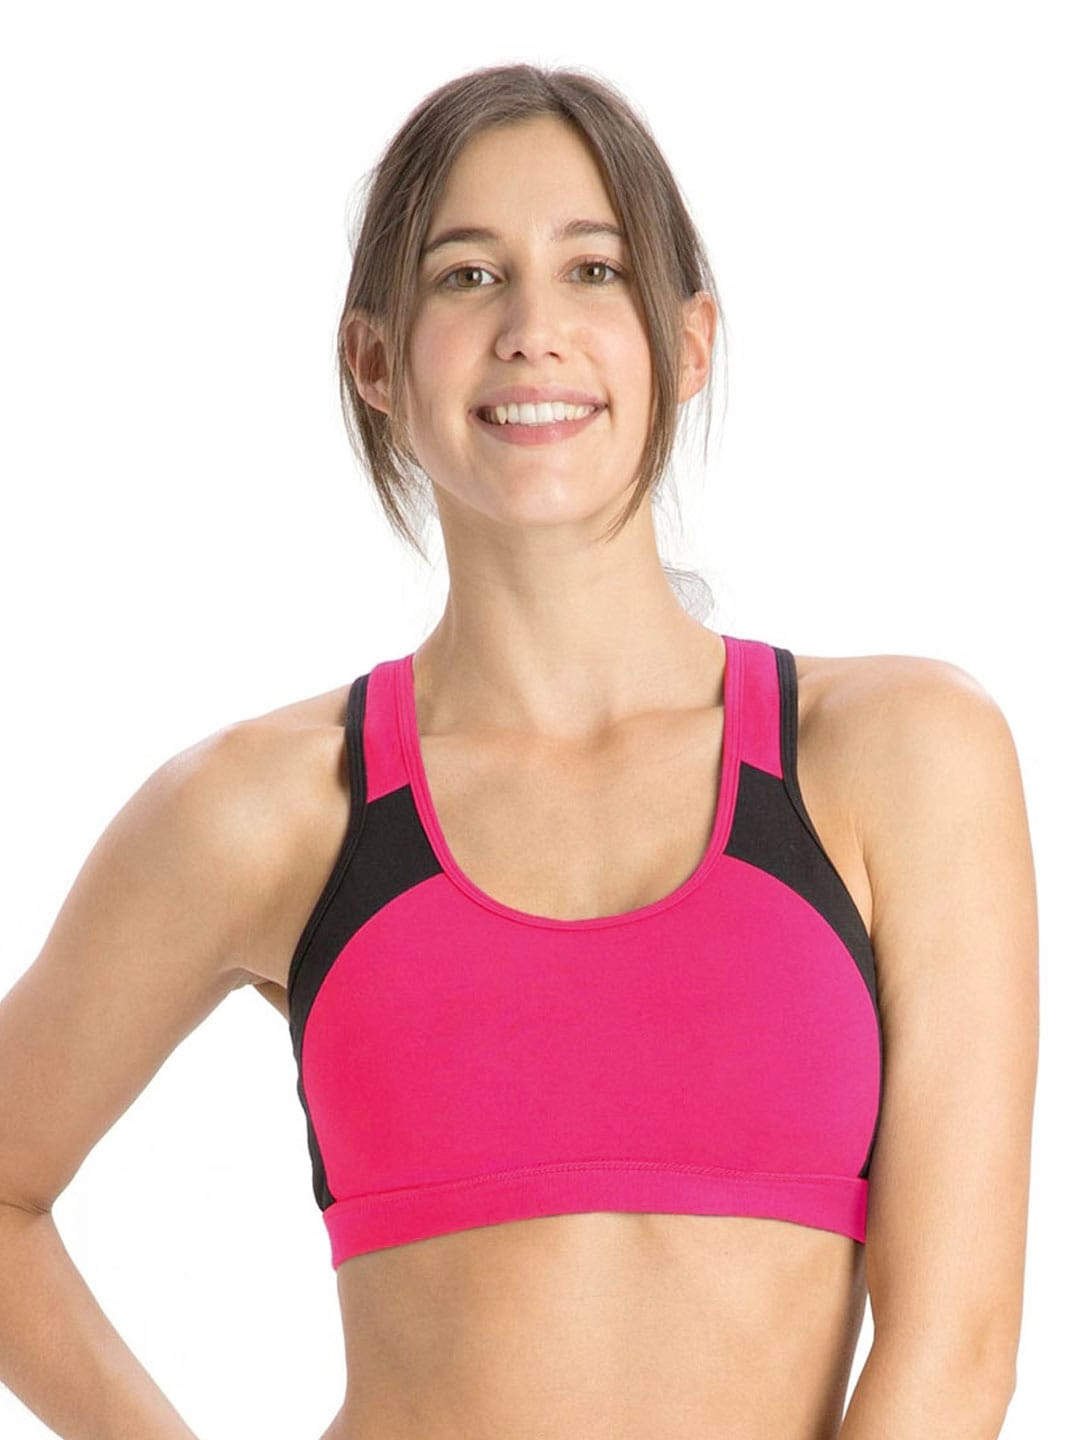 441cf91482c4c Jockey 1380-0105-ru-bl Pink And Black Power Back Active Sports Bra 1380-  Price in India